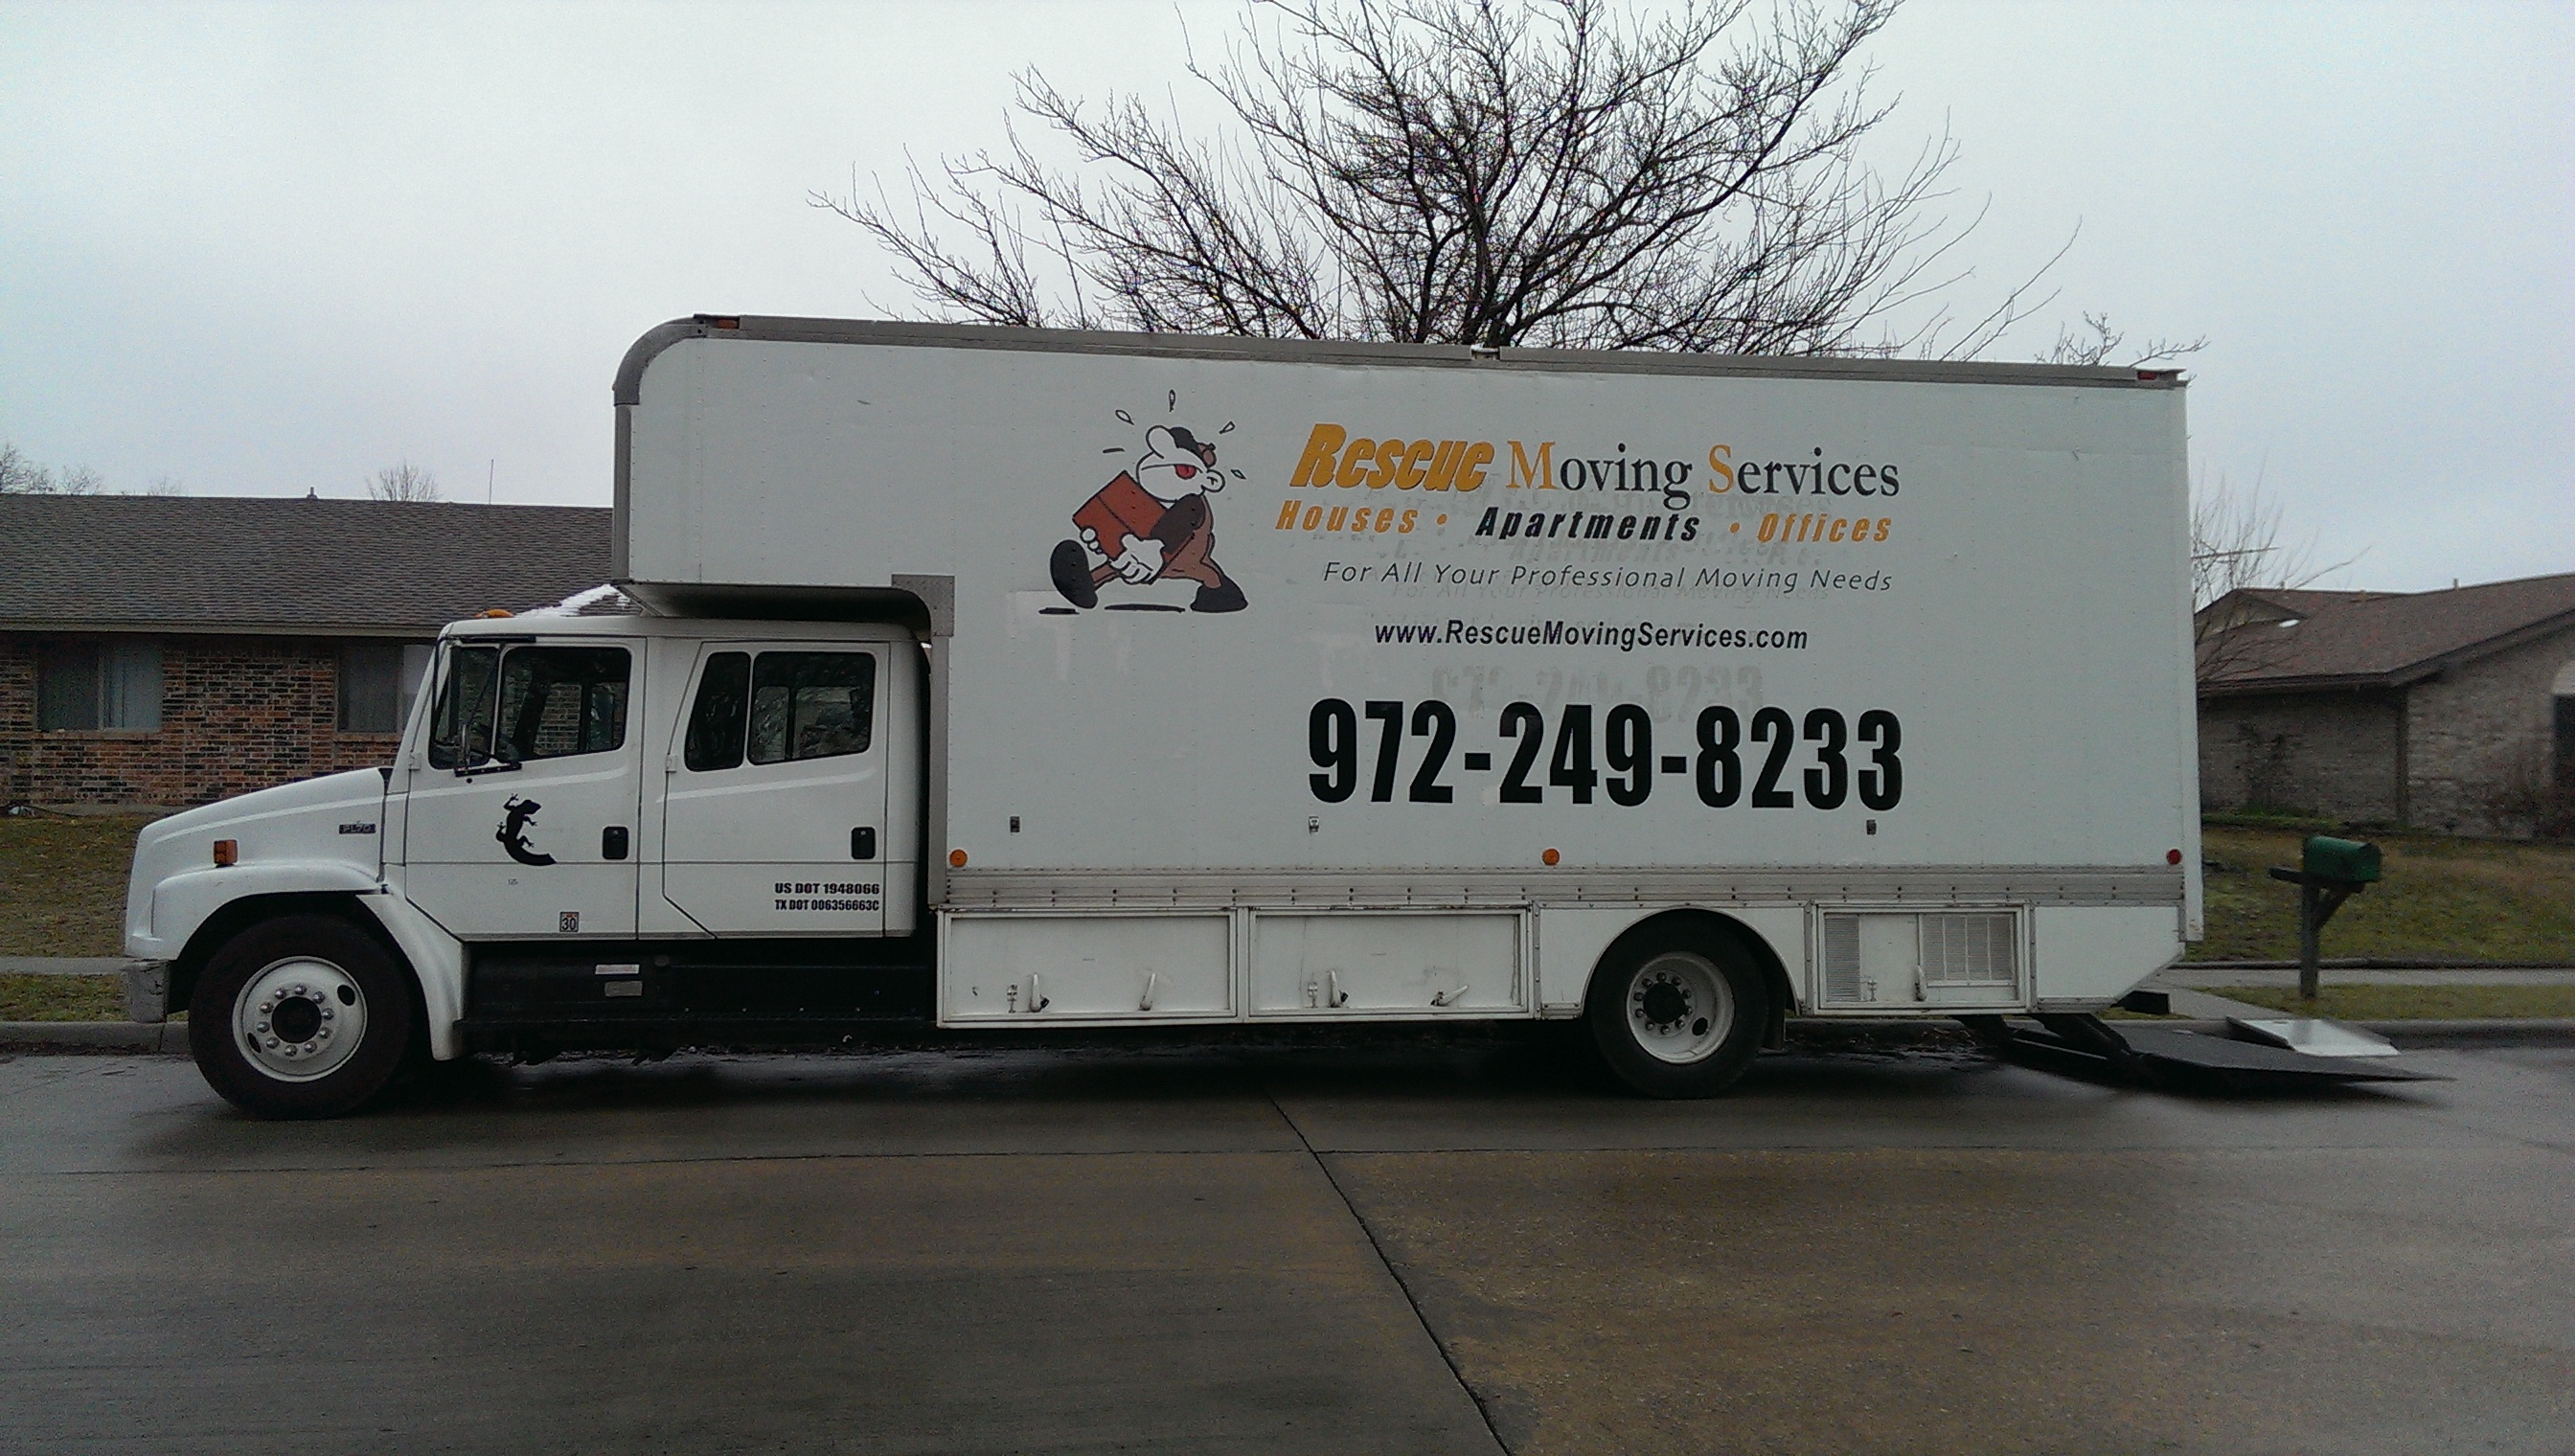 lewisville moving company | lewisville movers |rescue movers